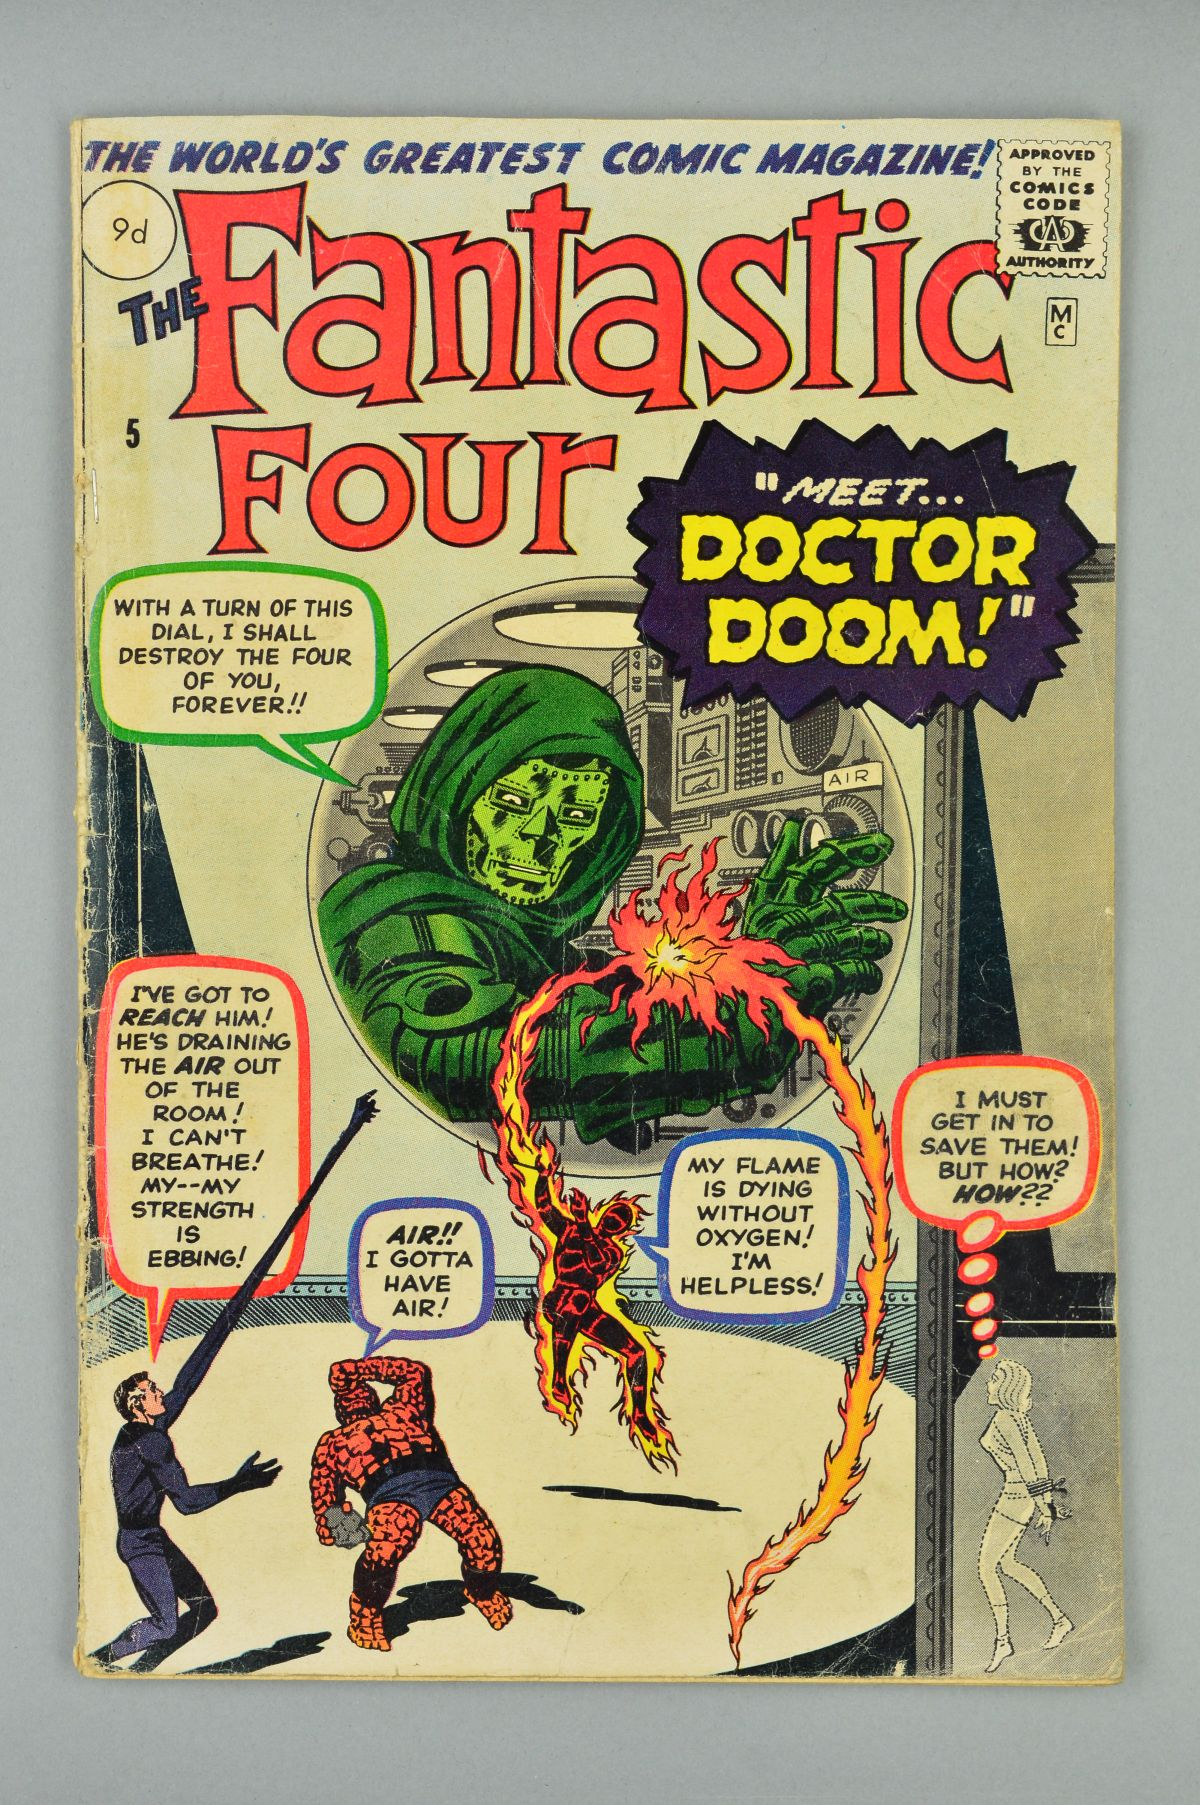 Lot 1805 - Fantastic Four (1961) #5, Published:July 01, 1962,Writer:Stan Lee, Let's see, what's the most